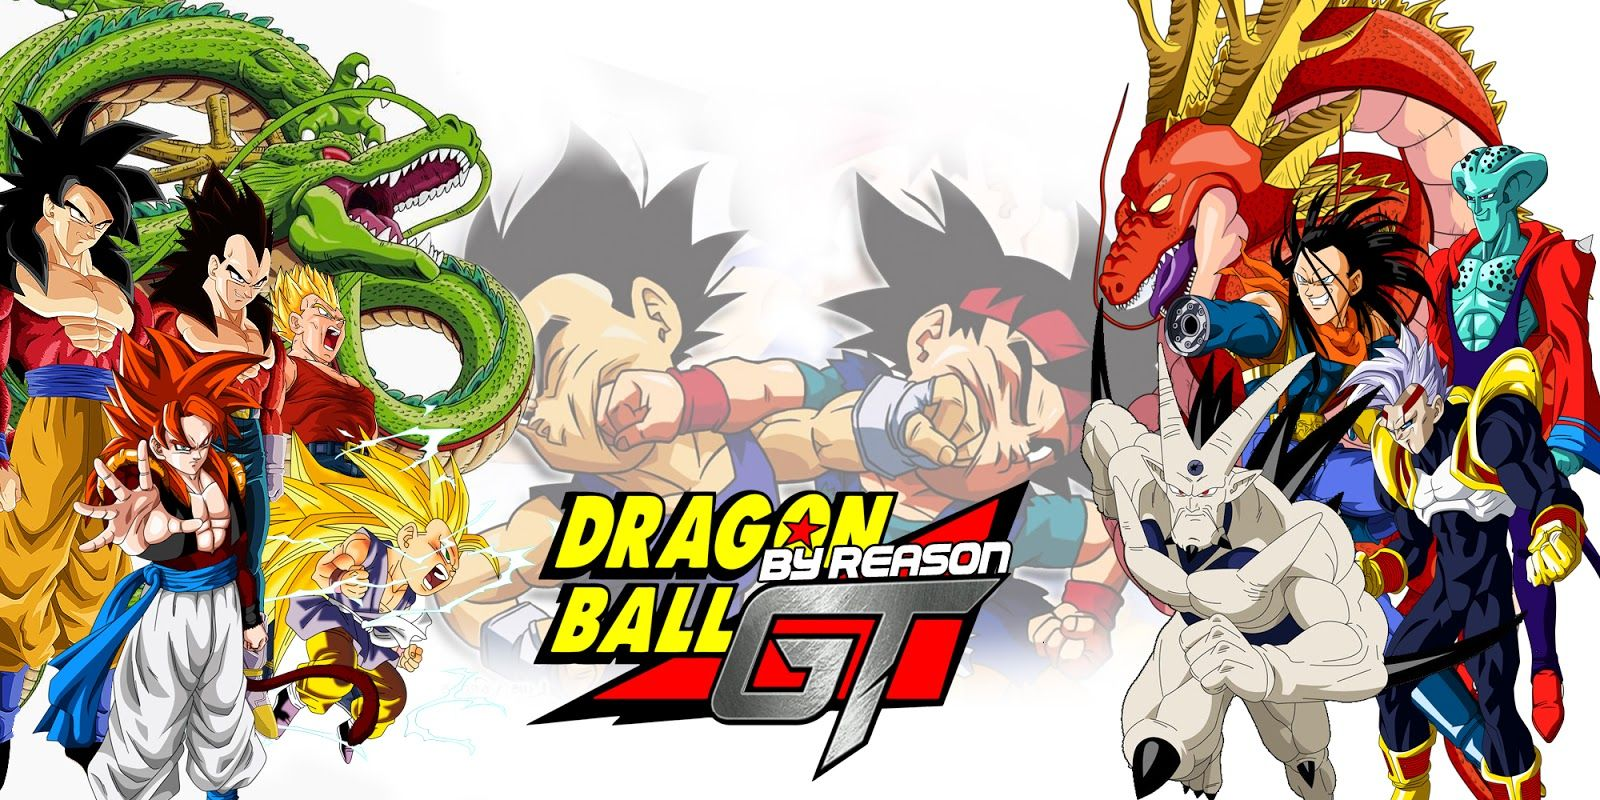 Dragon Ball Gt Hd Wallpapers Free Download For Iphone With Images